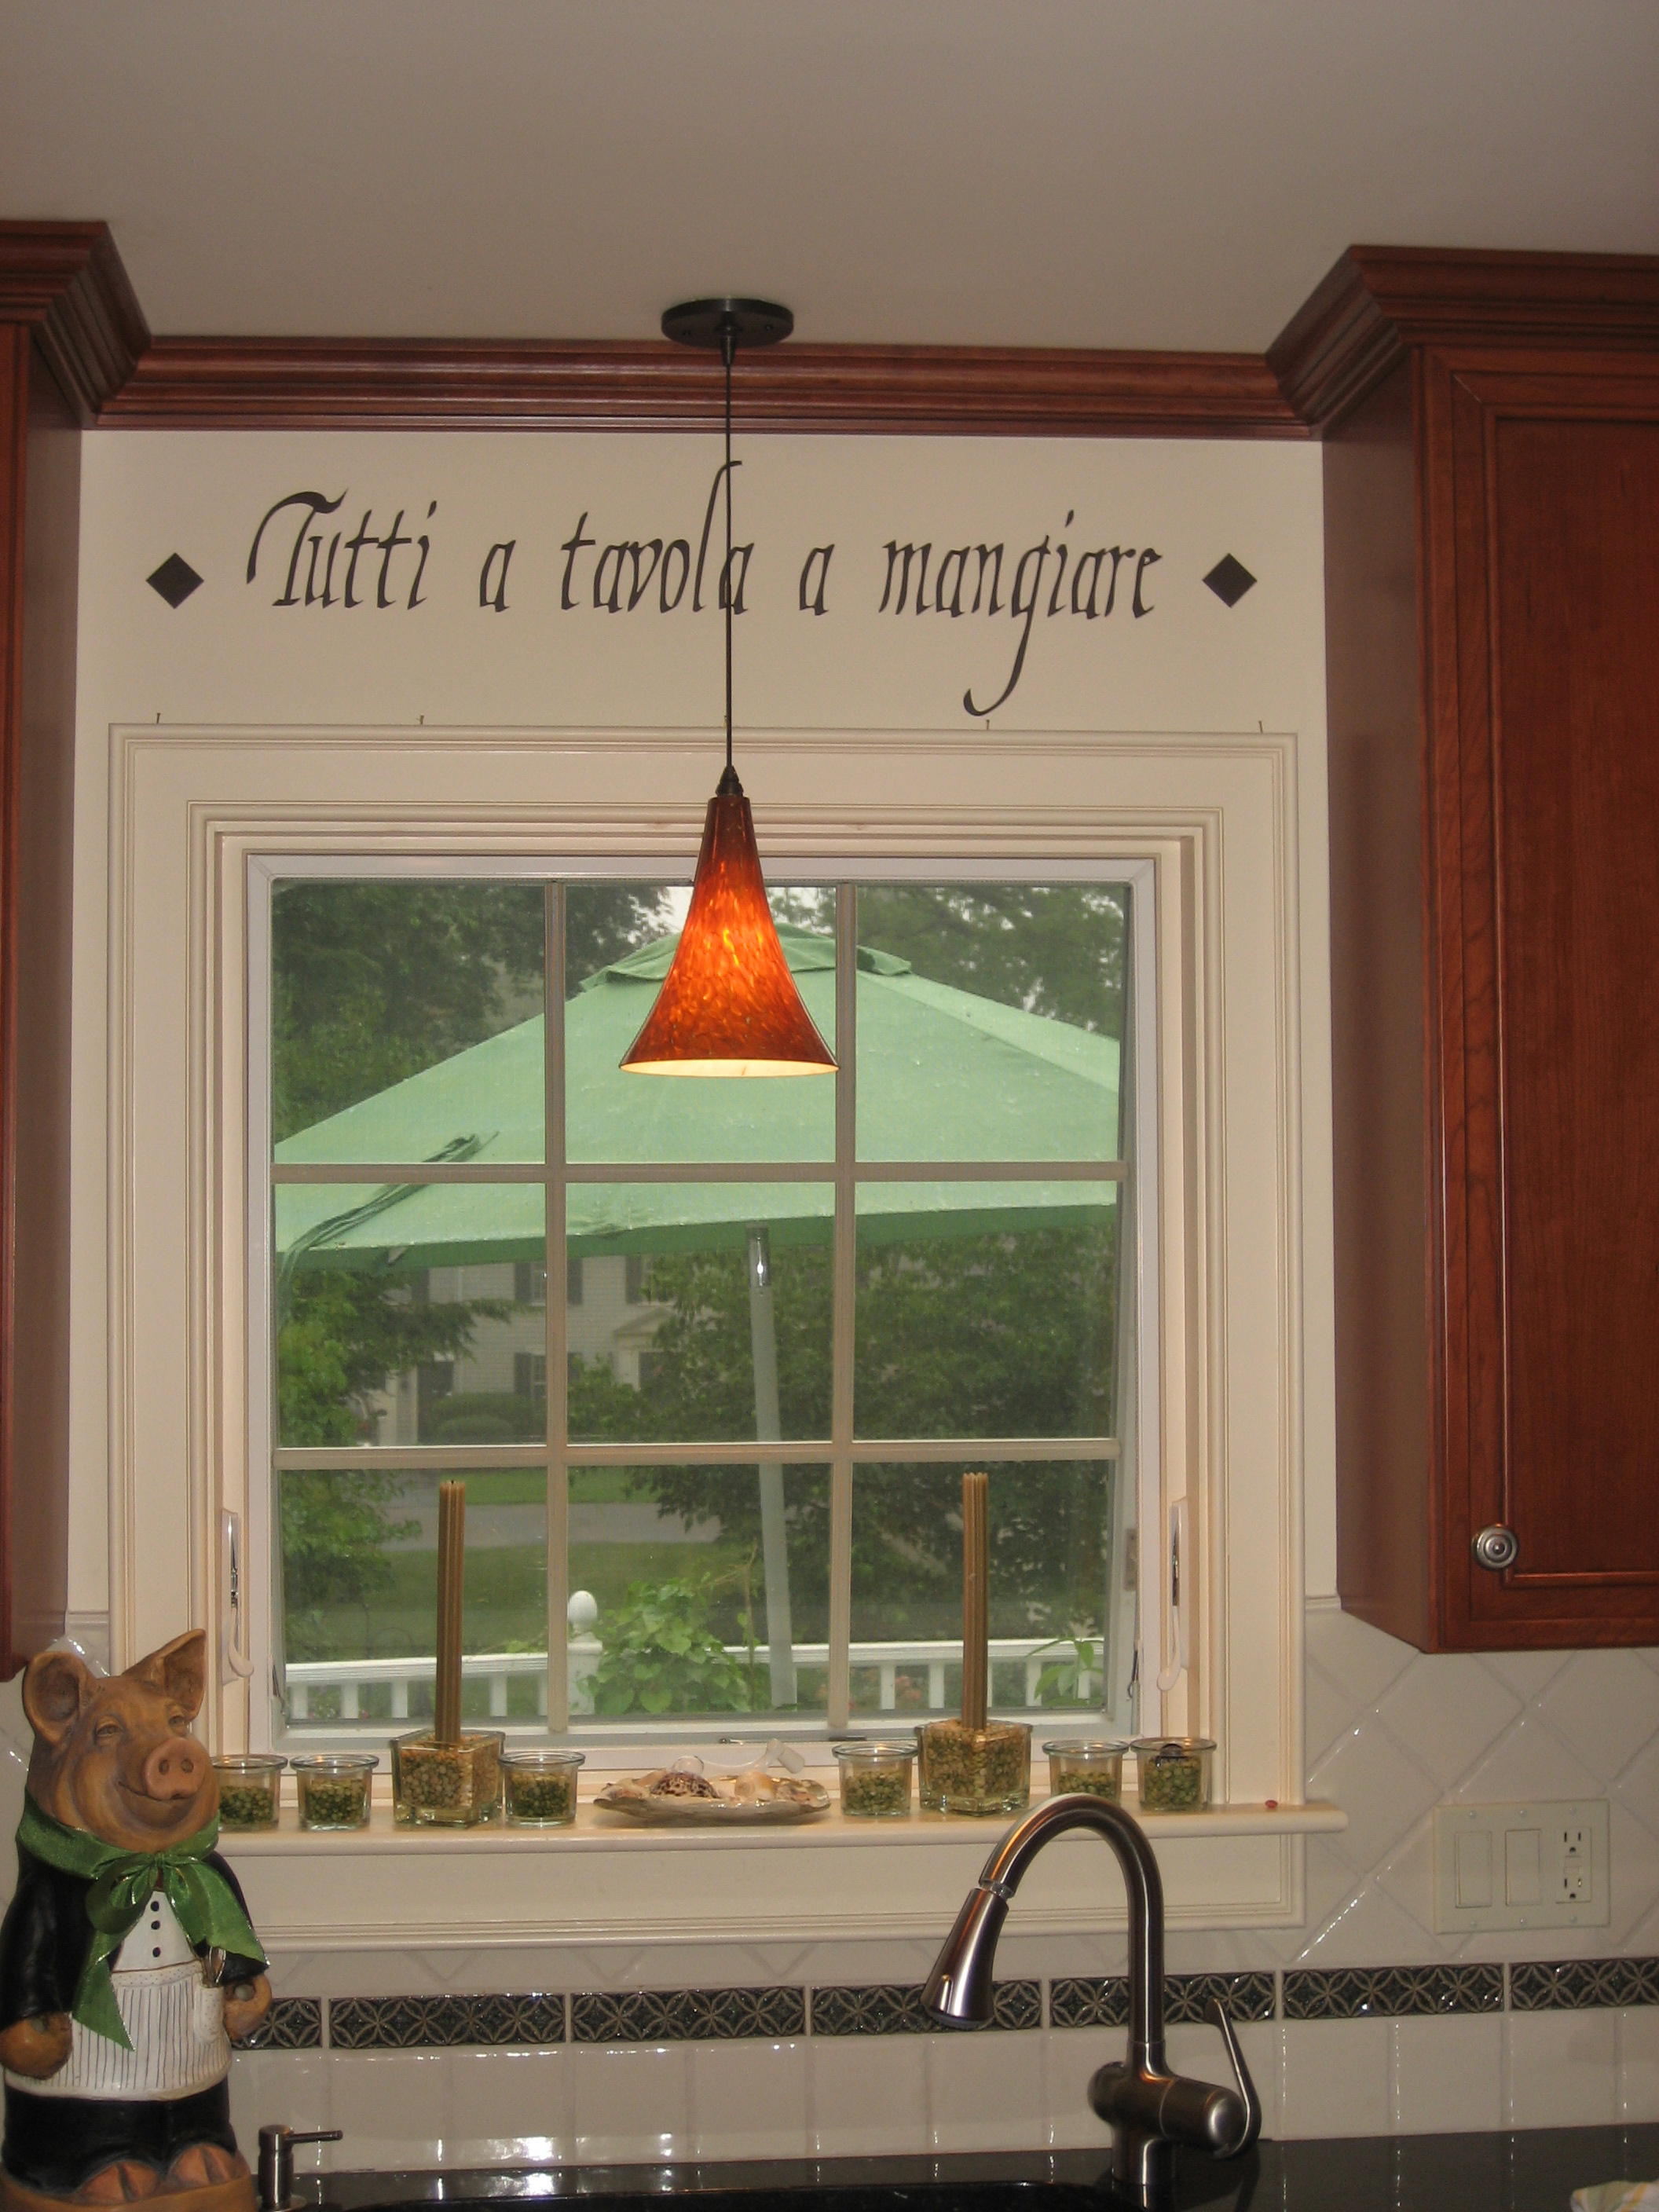 italian kitchen quotes italian kitchen sayings and wall decors